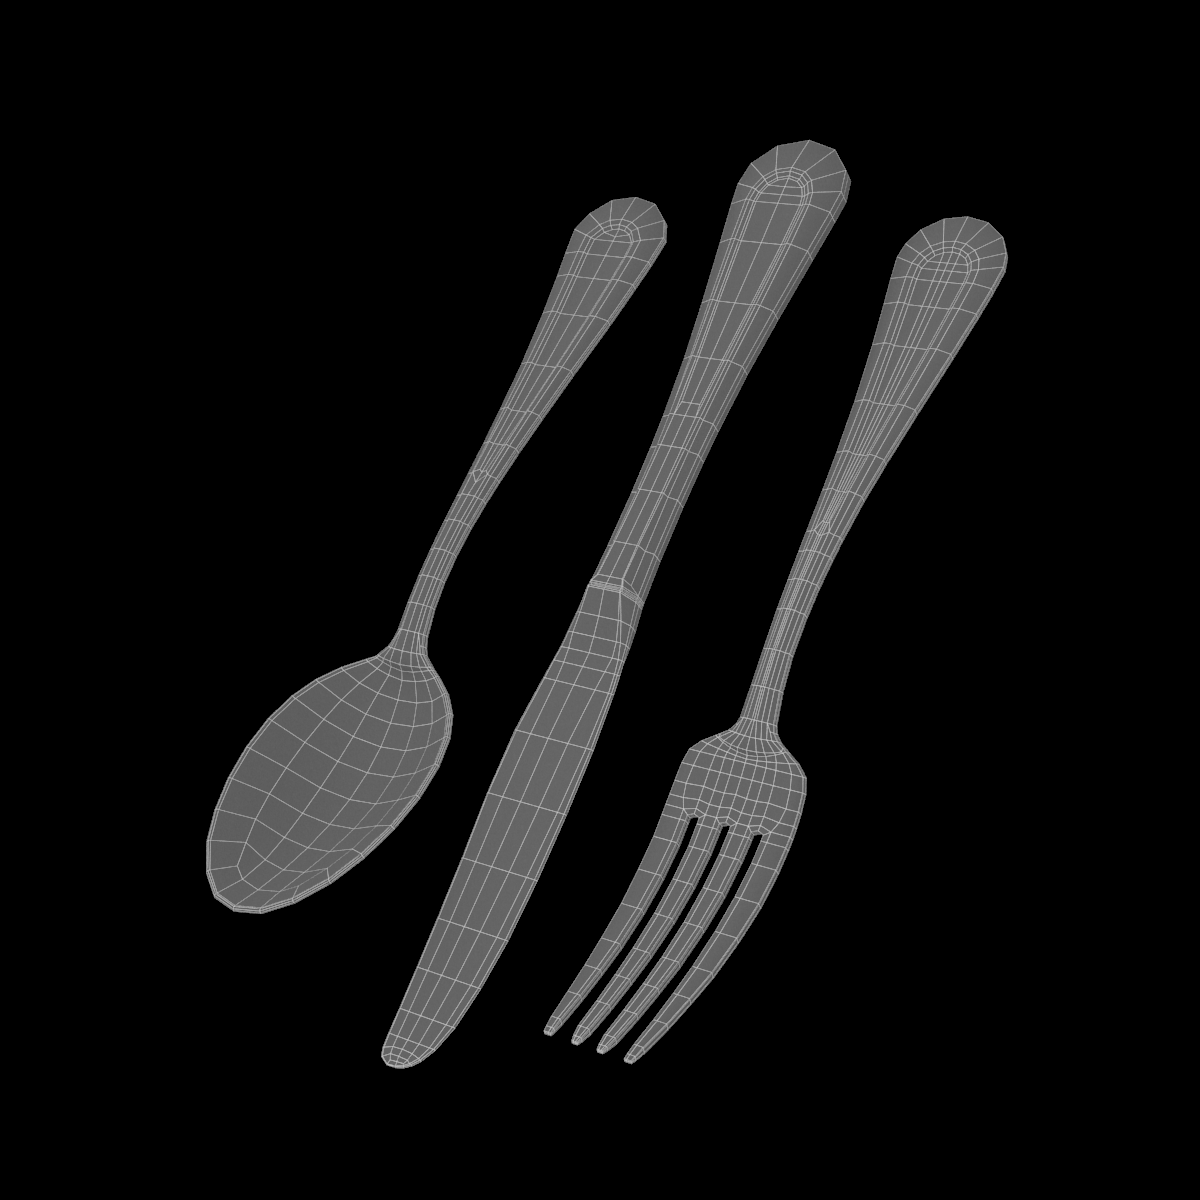 table dinner knife, fork, spoon classic cutlery 3d model 3ds max fbx c4d ma mb  obj 284625